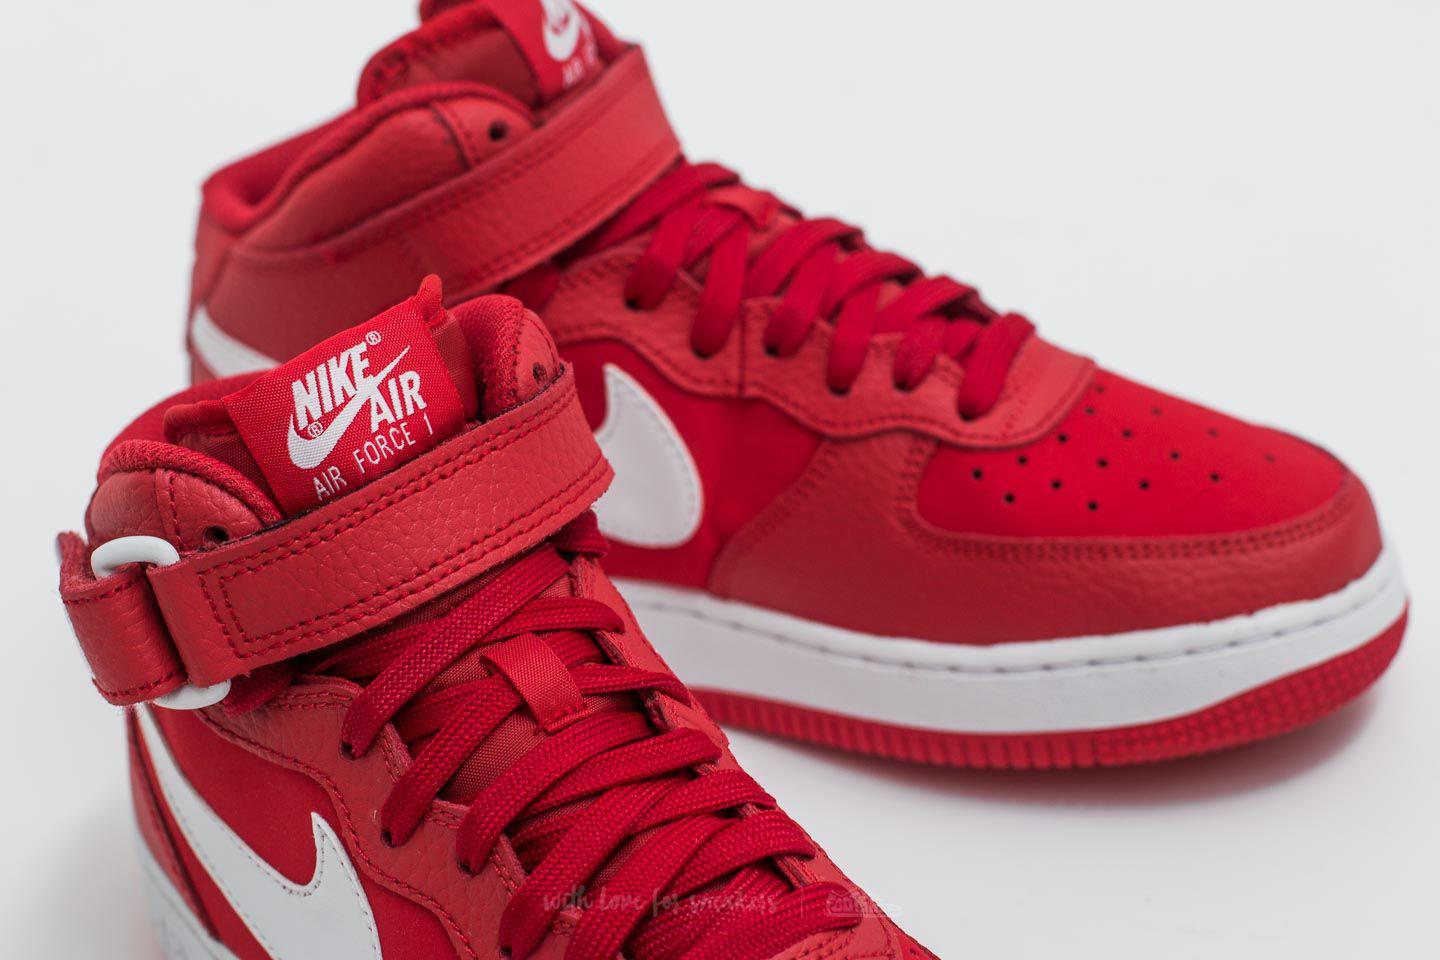 Lyst - Nike Air Force 1 Mid (gs) University Red  White in Red for Men afc2adb9d